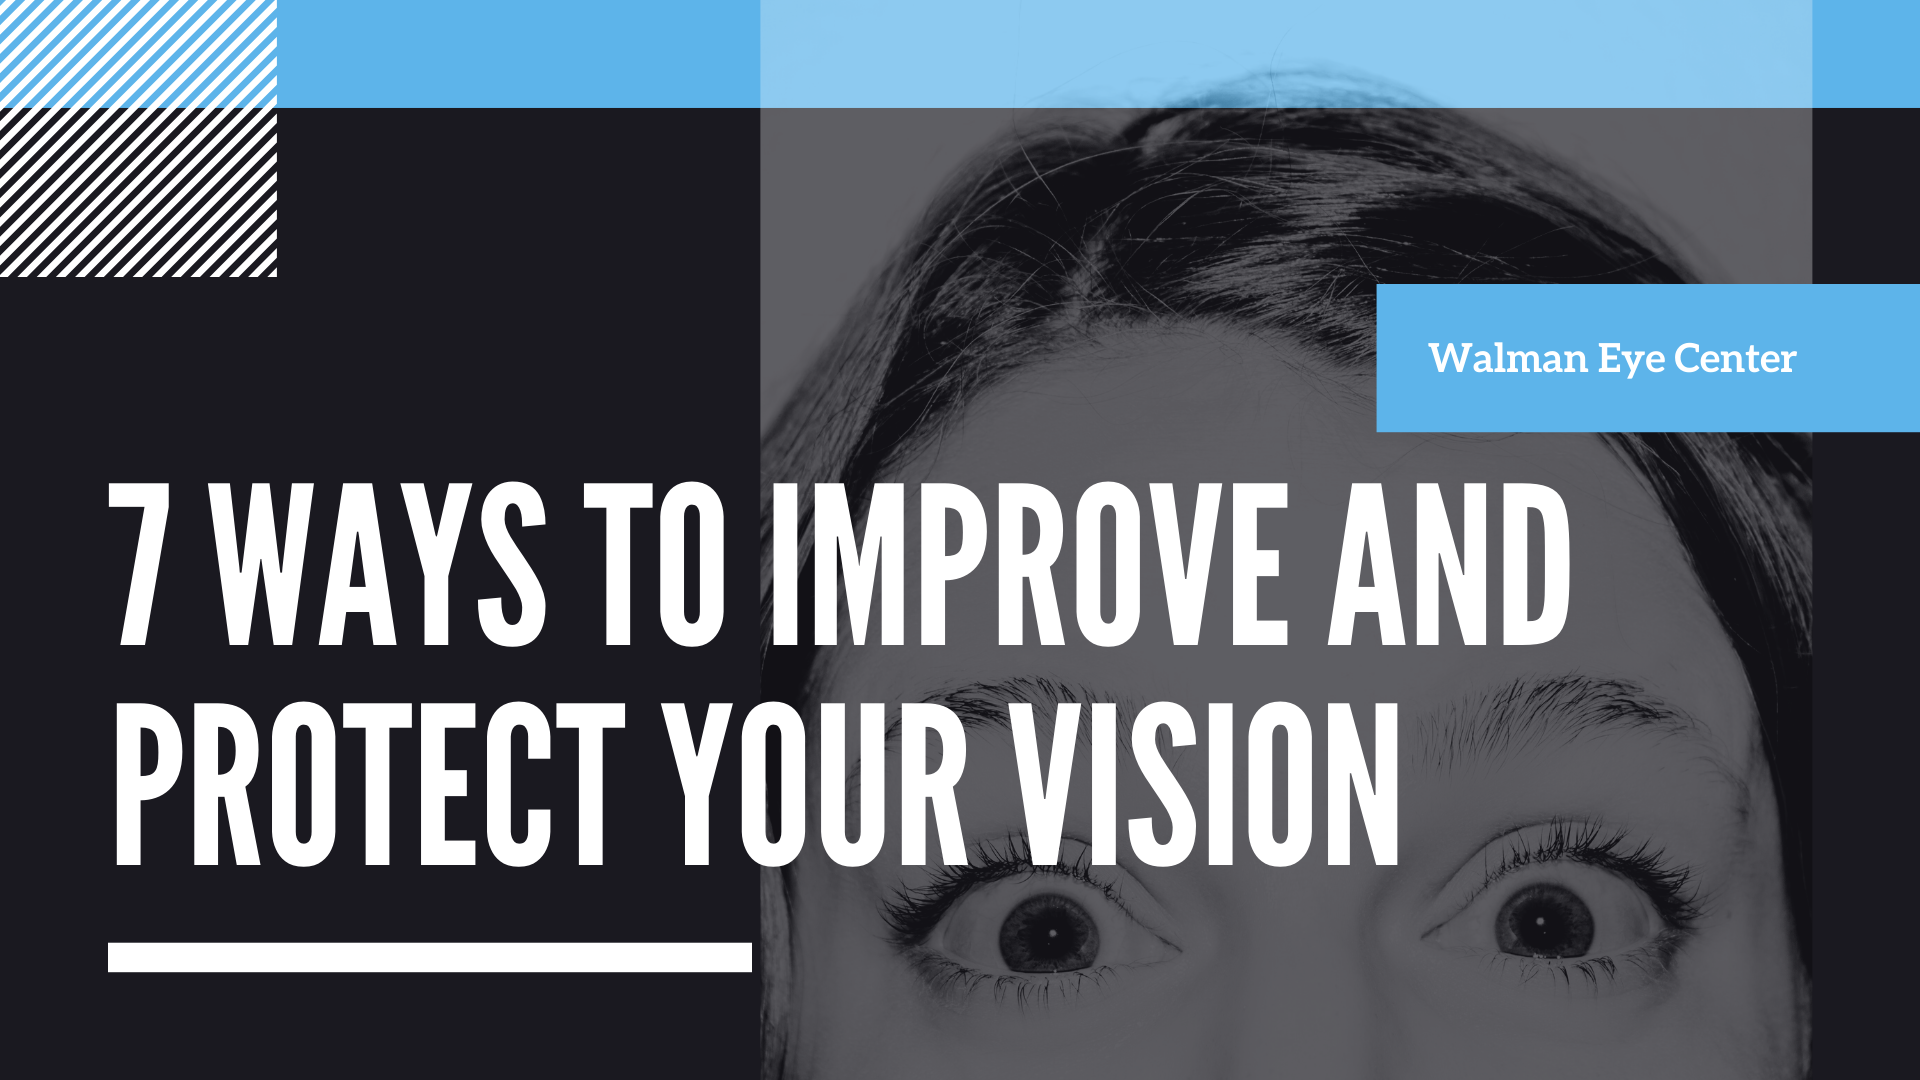 7 Ways To Improve And Protect Your Vision